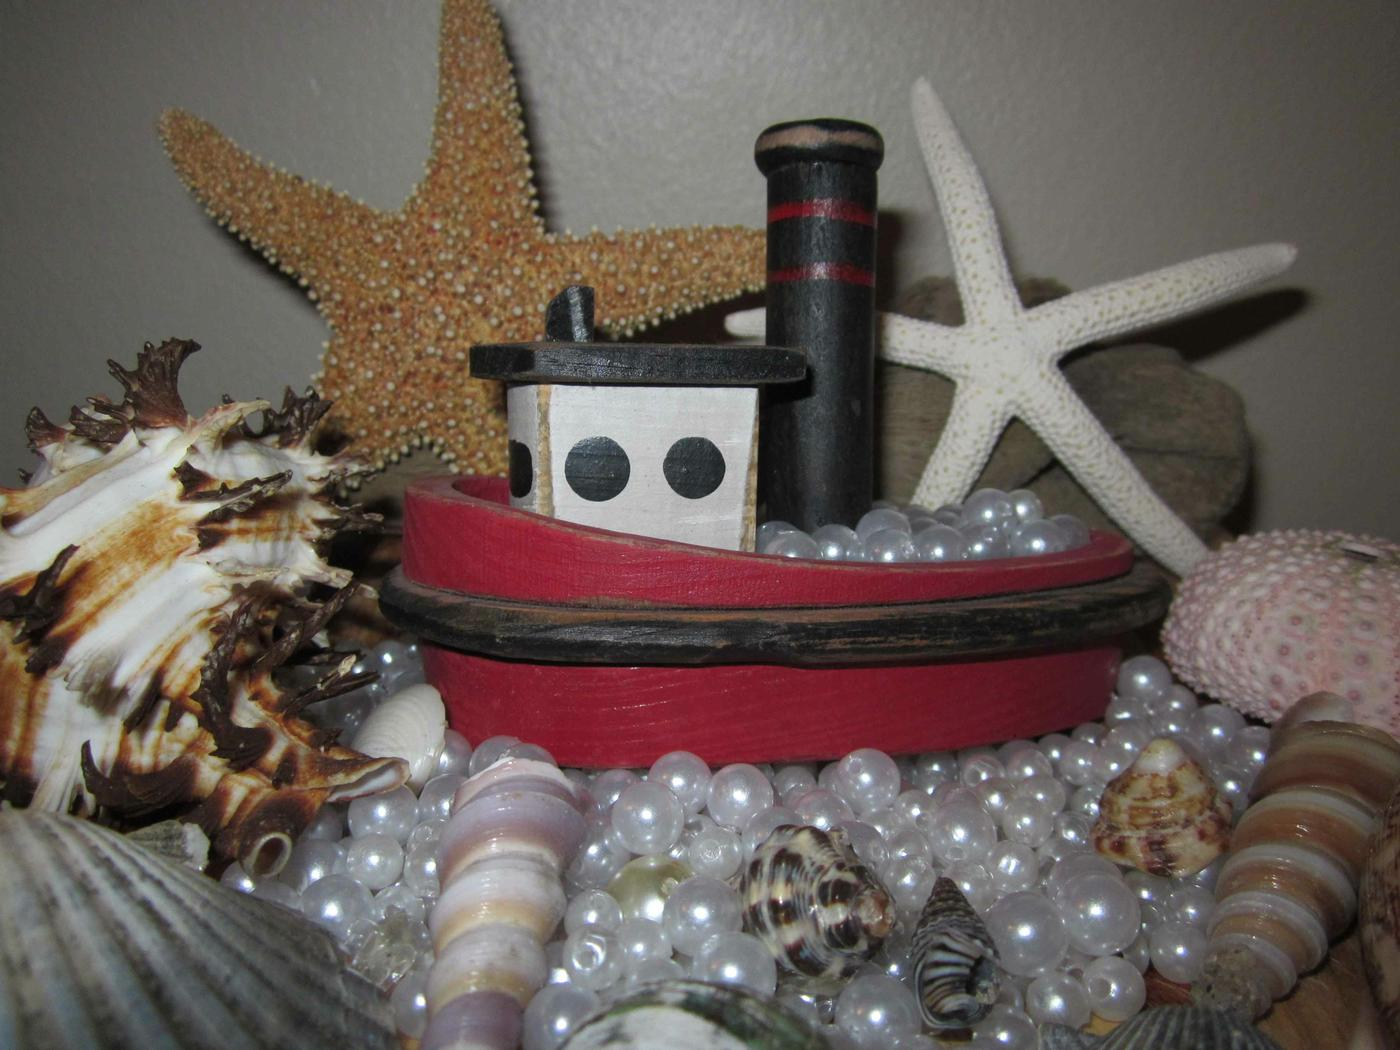 Enchanted Seashells, Confessions of a Tugboat Captain